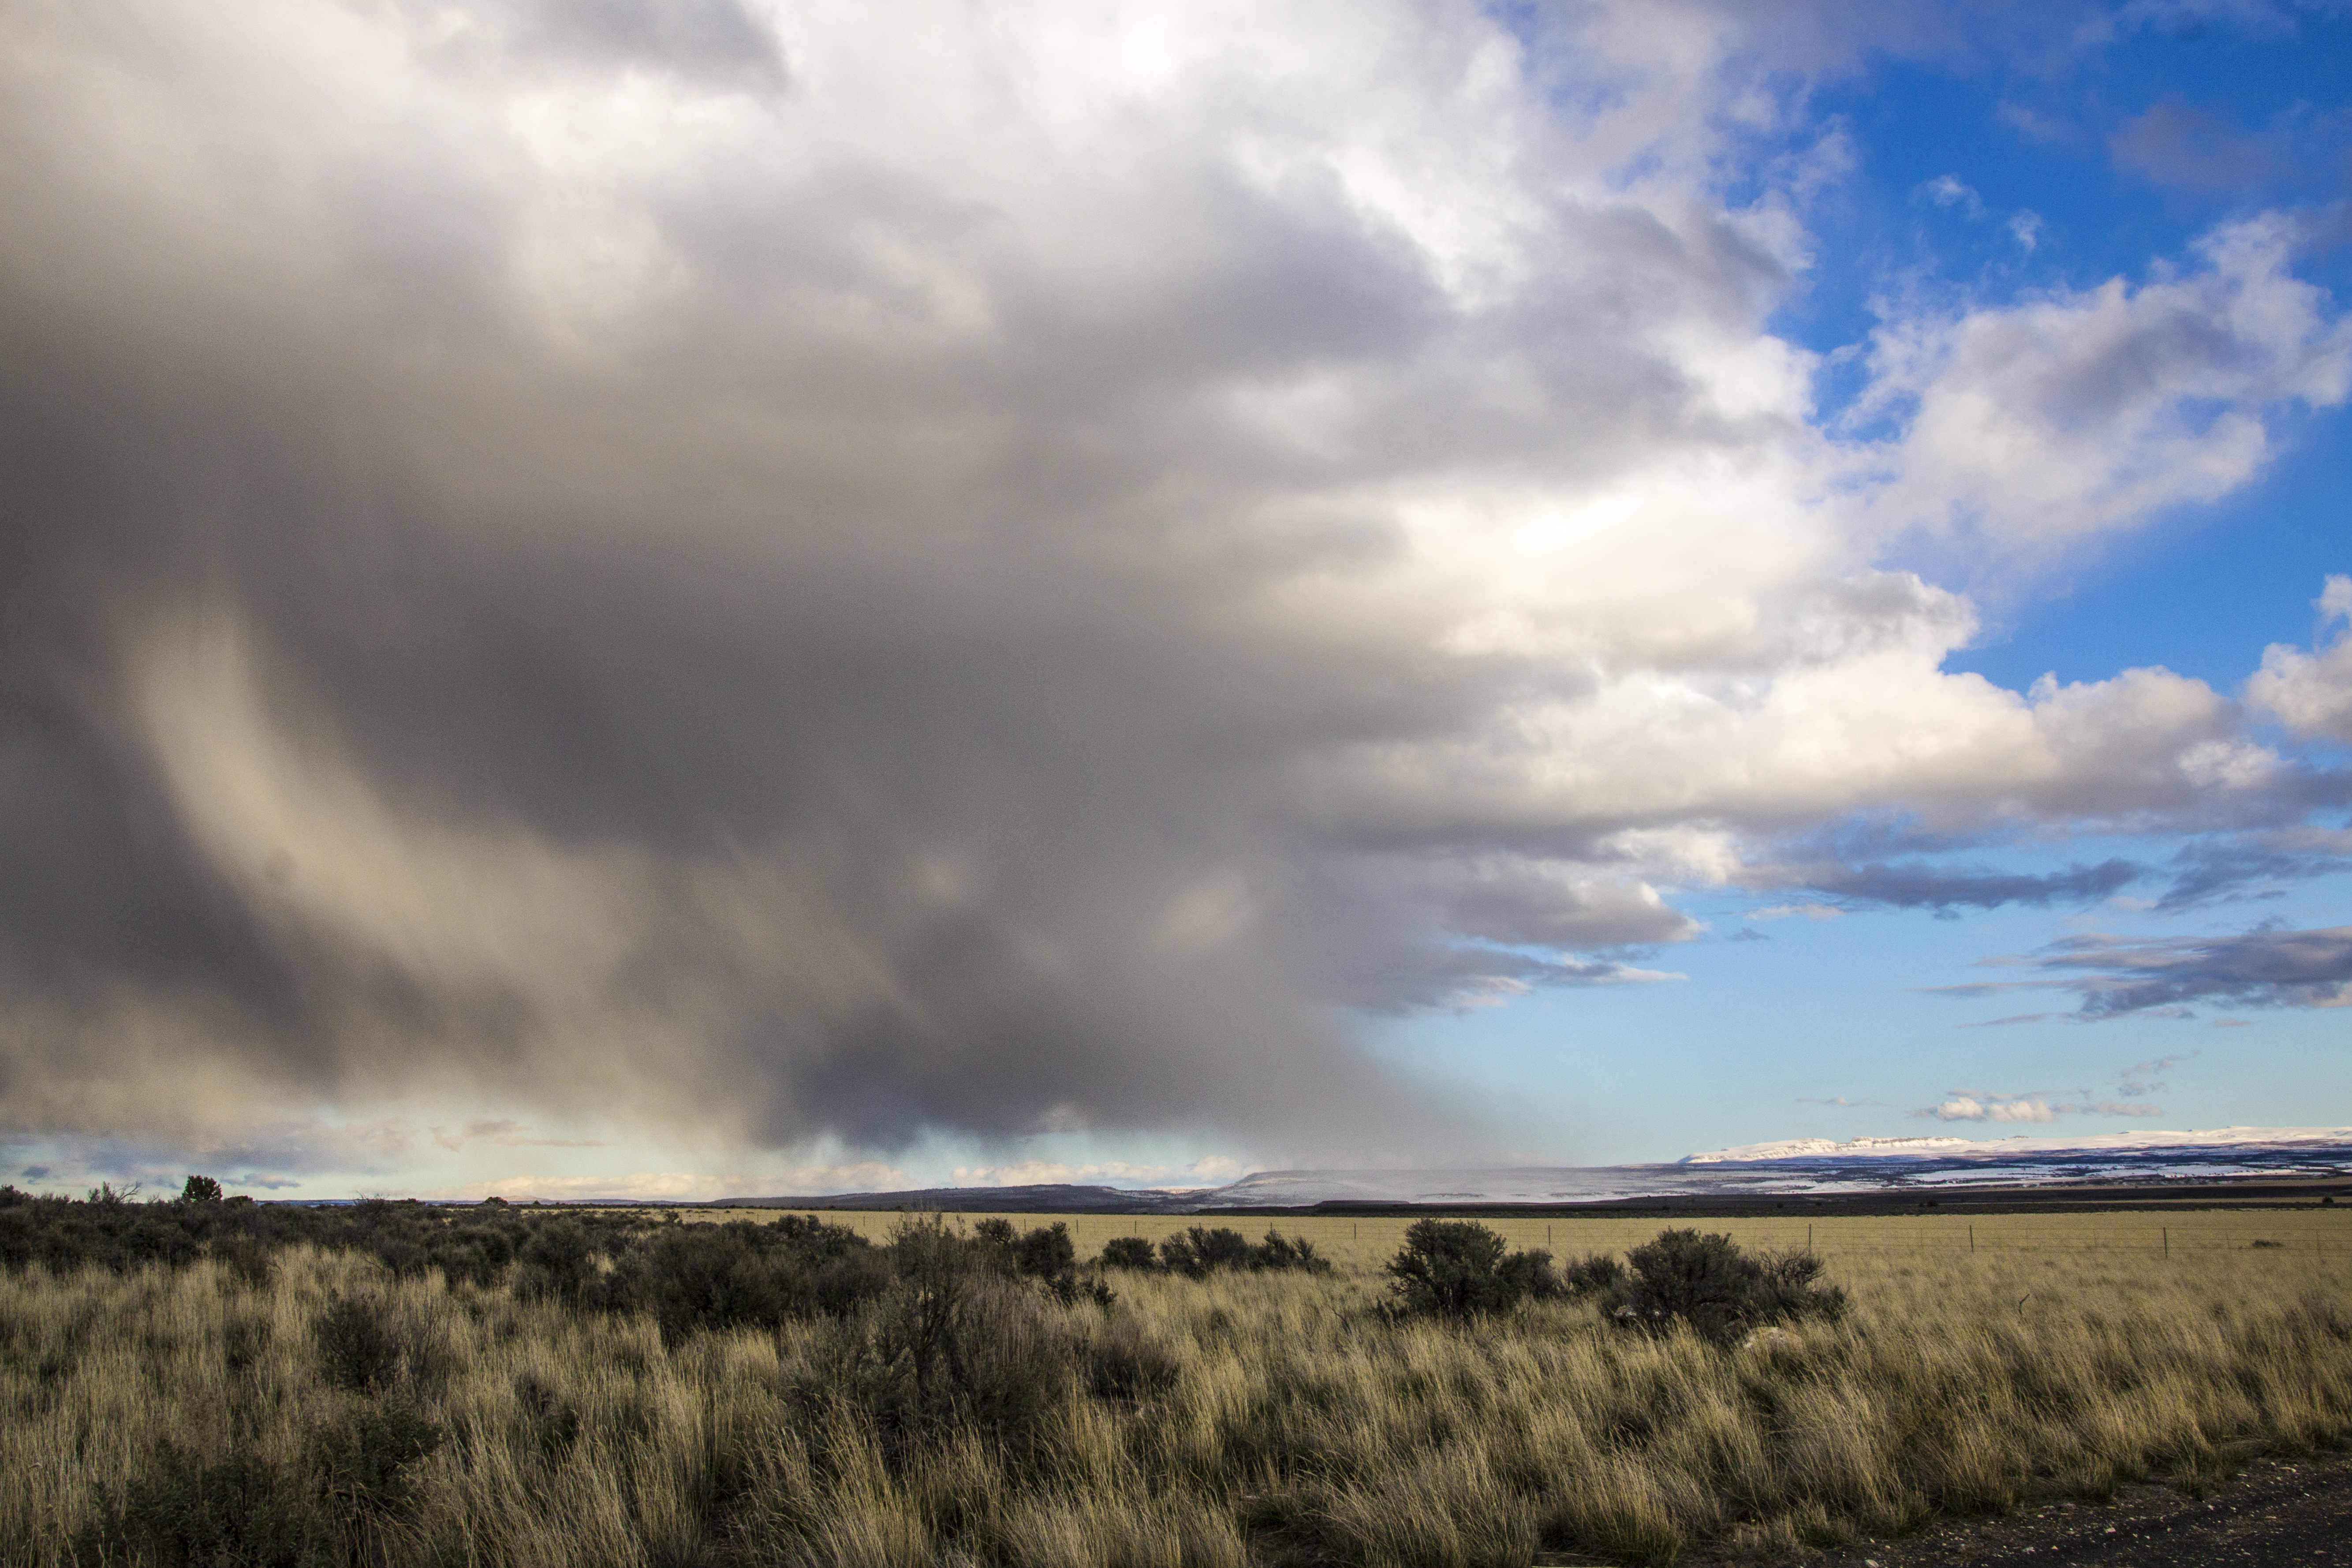 Storm clouds in eastern oregon photo